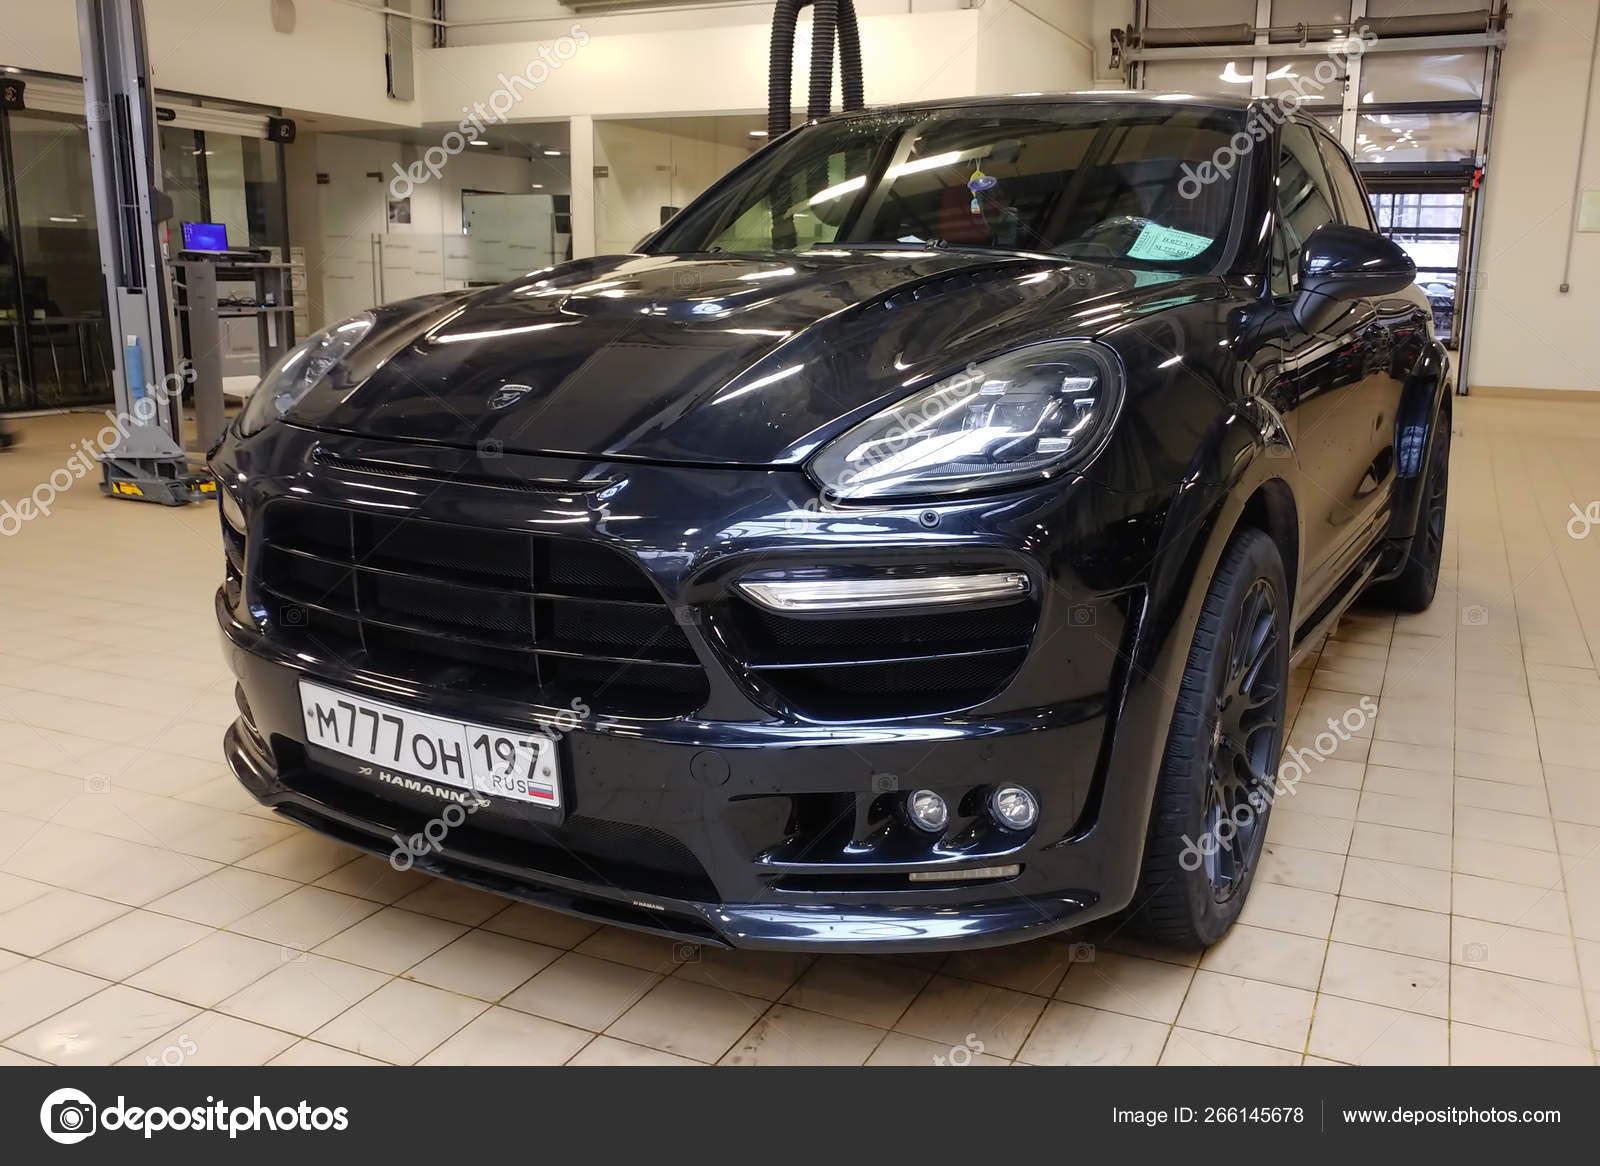 Moscow Russia April 30 2019 Tuned And Super Wide Black Porsche Cayenne In Service Center Modified By Hamann With Exclusive Bodykit Front View Stock Editorial Photo C Dven 266145678